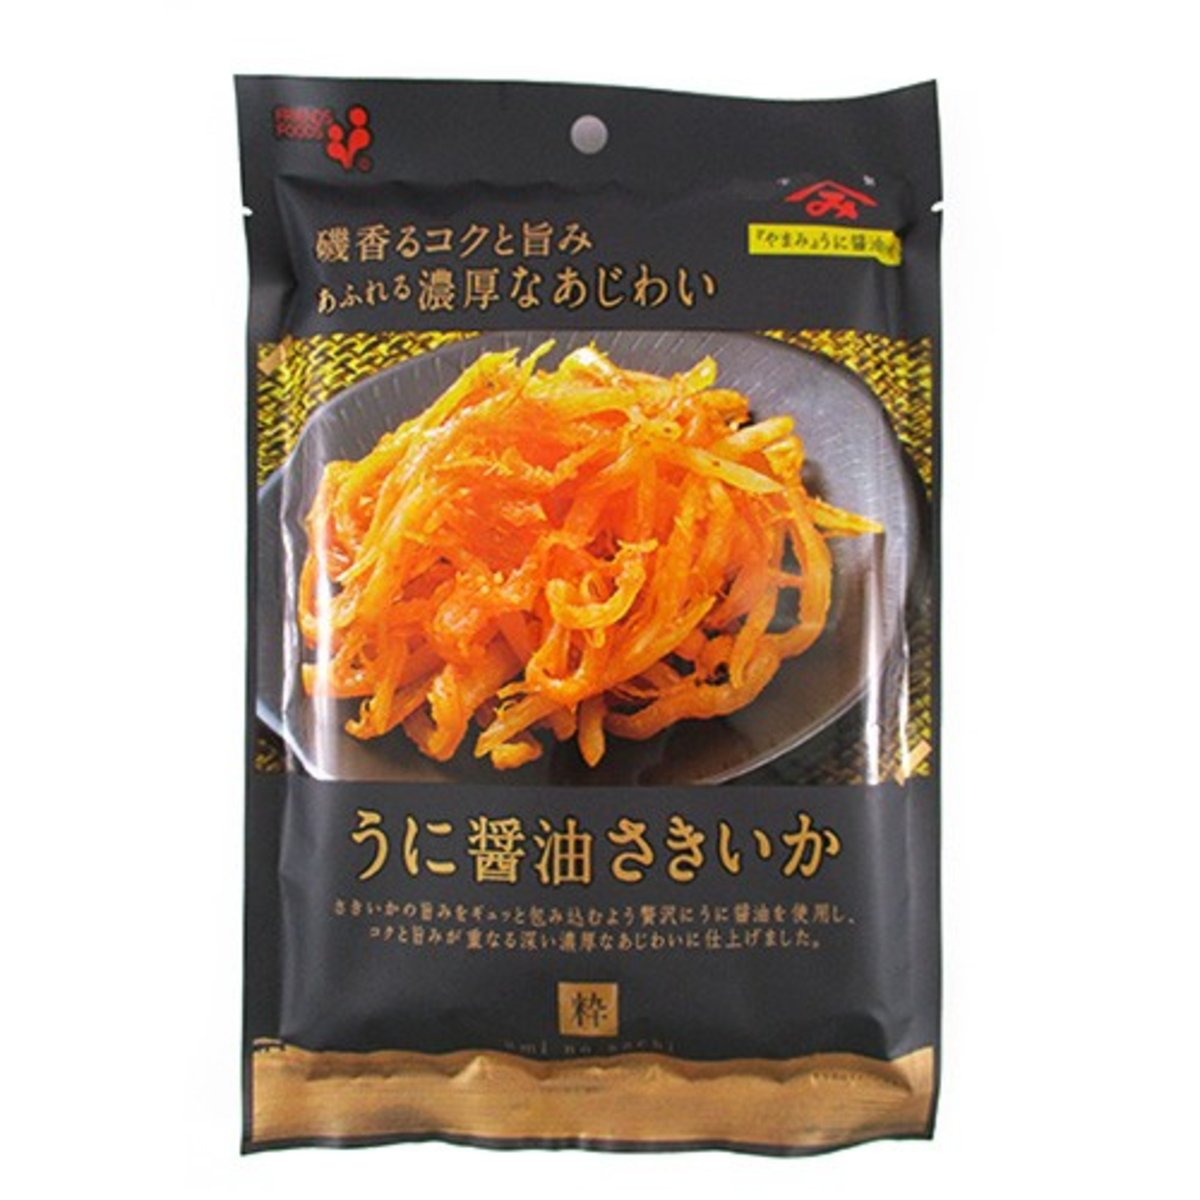 Urchin with Soy Sauce Dried Squid 46g